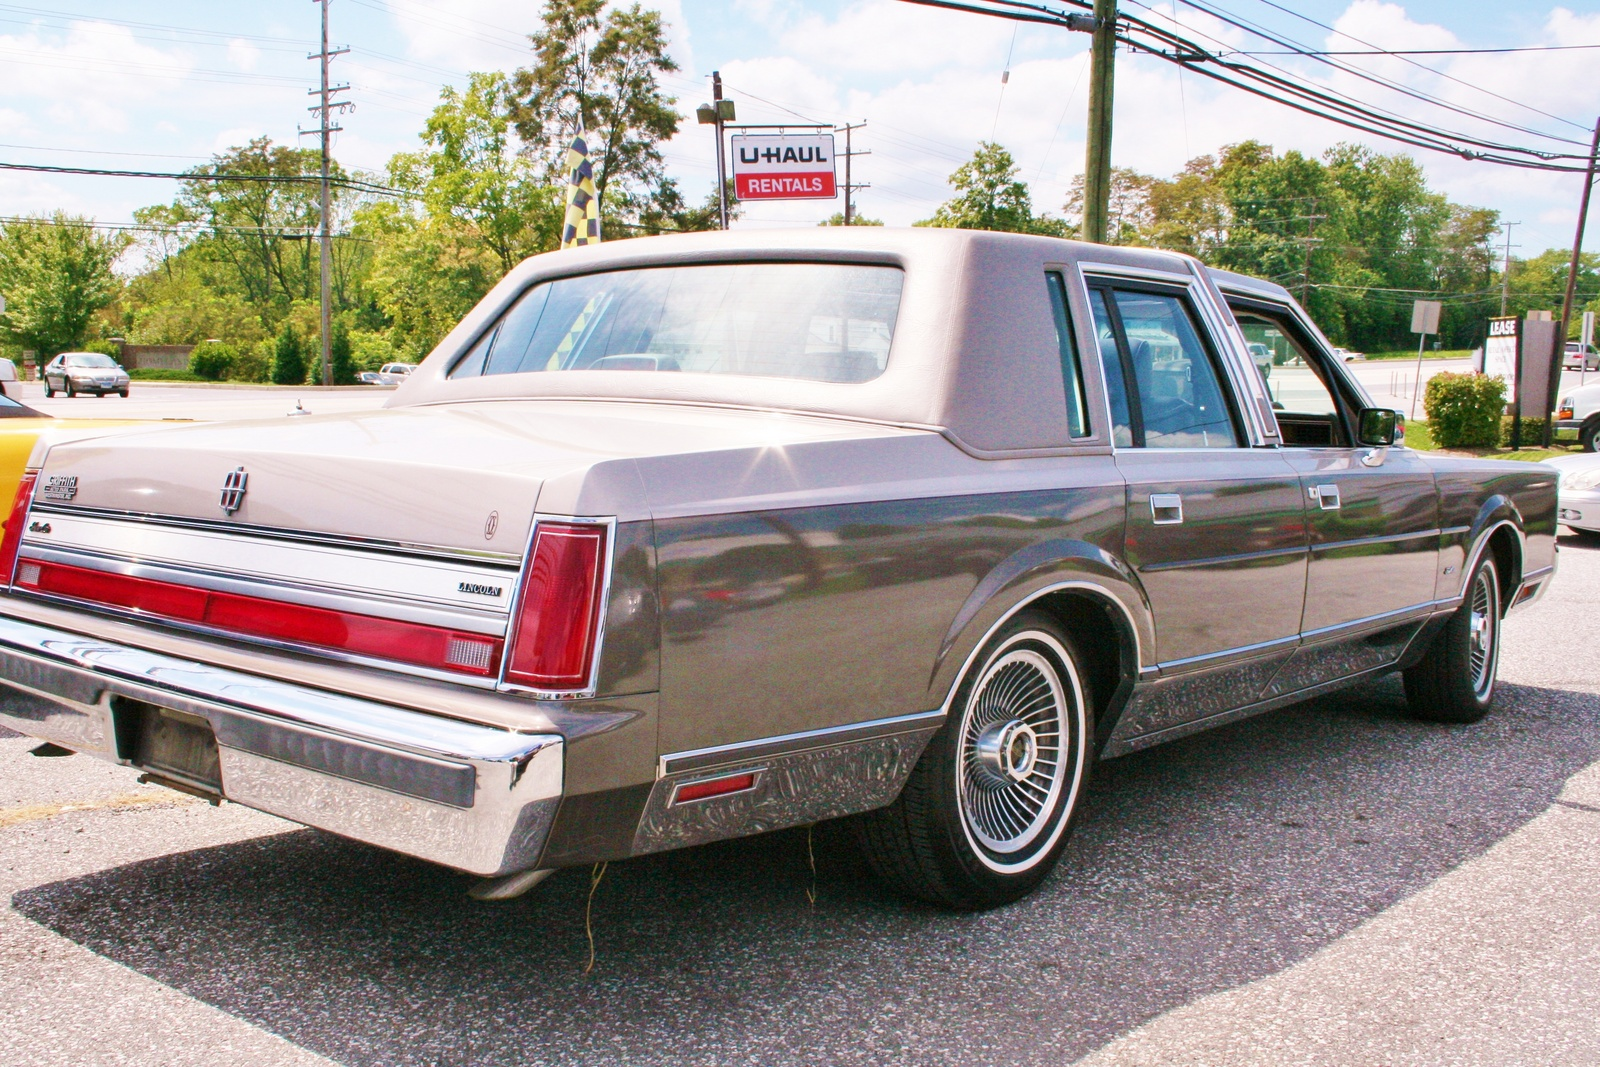 1986 lincoln mark vii with 1988 Lincoln Town Car Pictures C19637 Pi36051040 on Getting The Most Out Of A Shift Kit likewise 2006 Lincoln Town Car Pictures C2592 pi36562938 also Lincoln Town Car in addition 2007 Lincoln Town Car Pictures C8028 pi36515897 as well Continental.